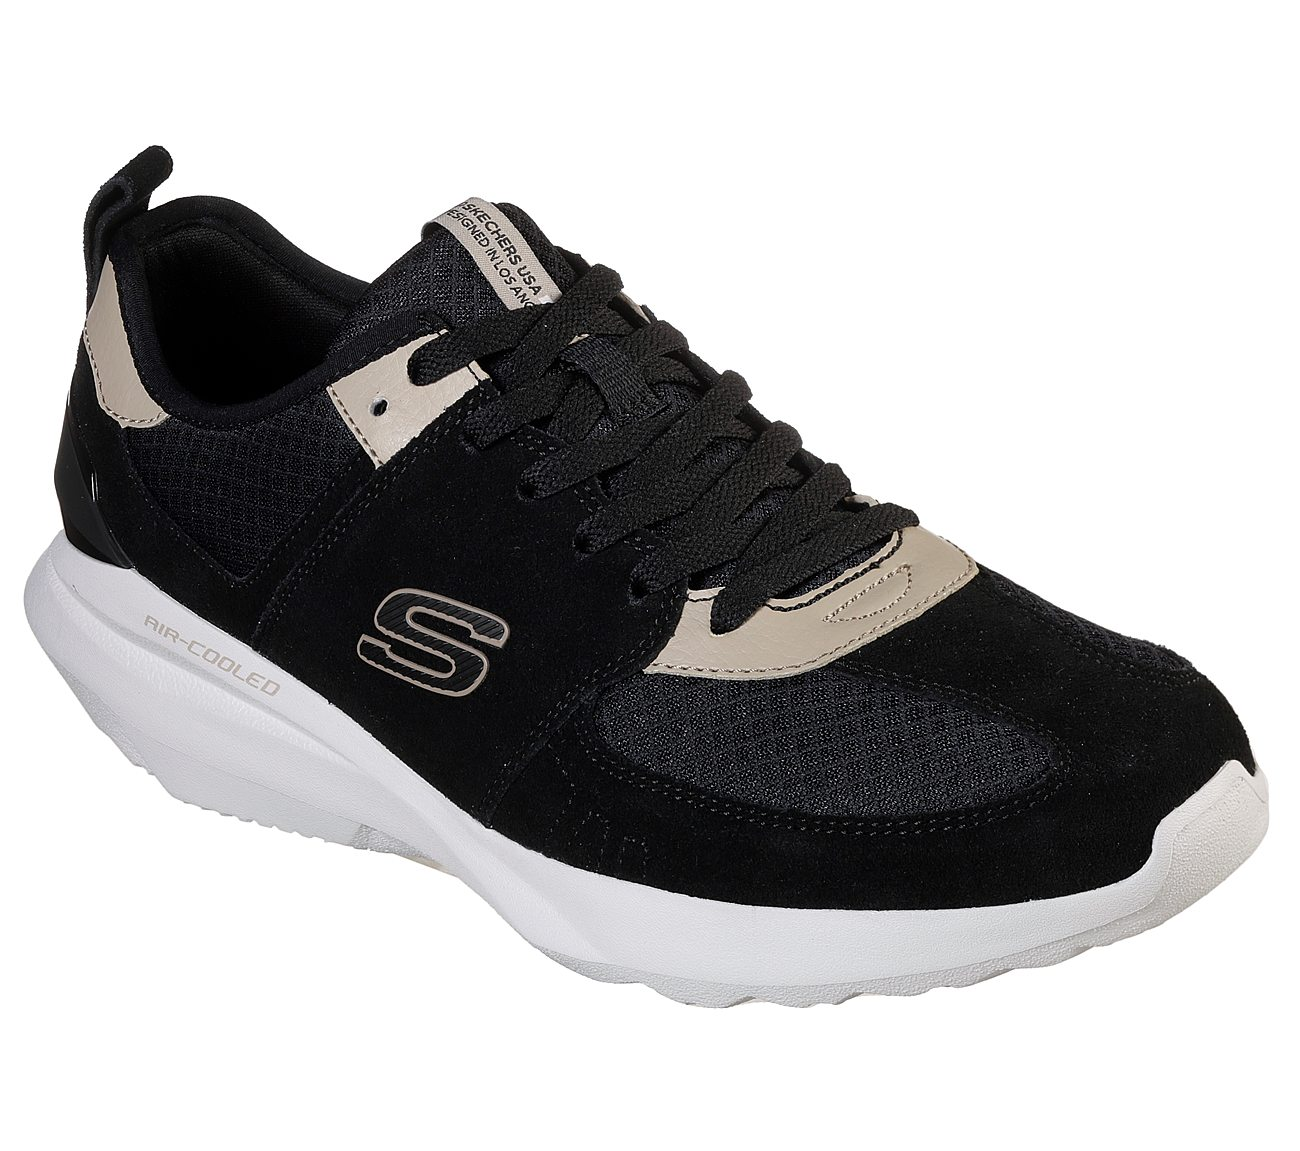 skechers black sport shoes